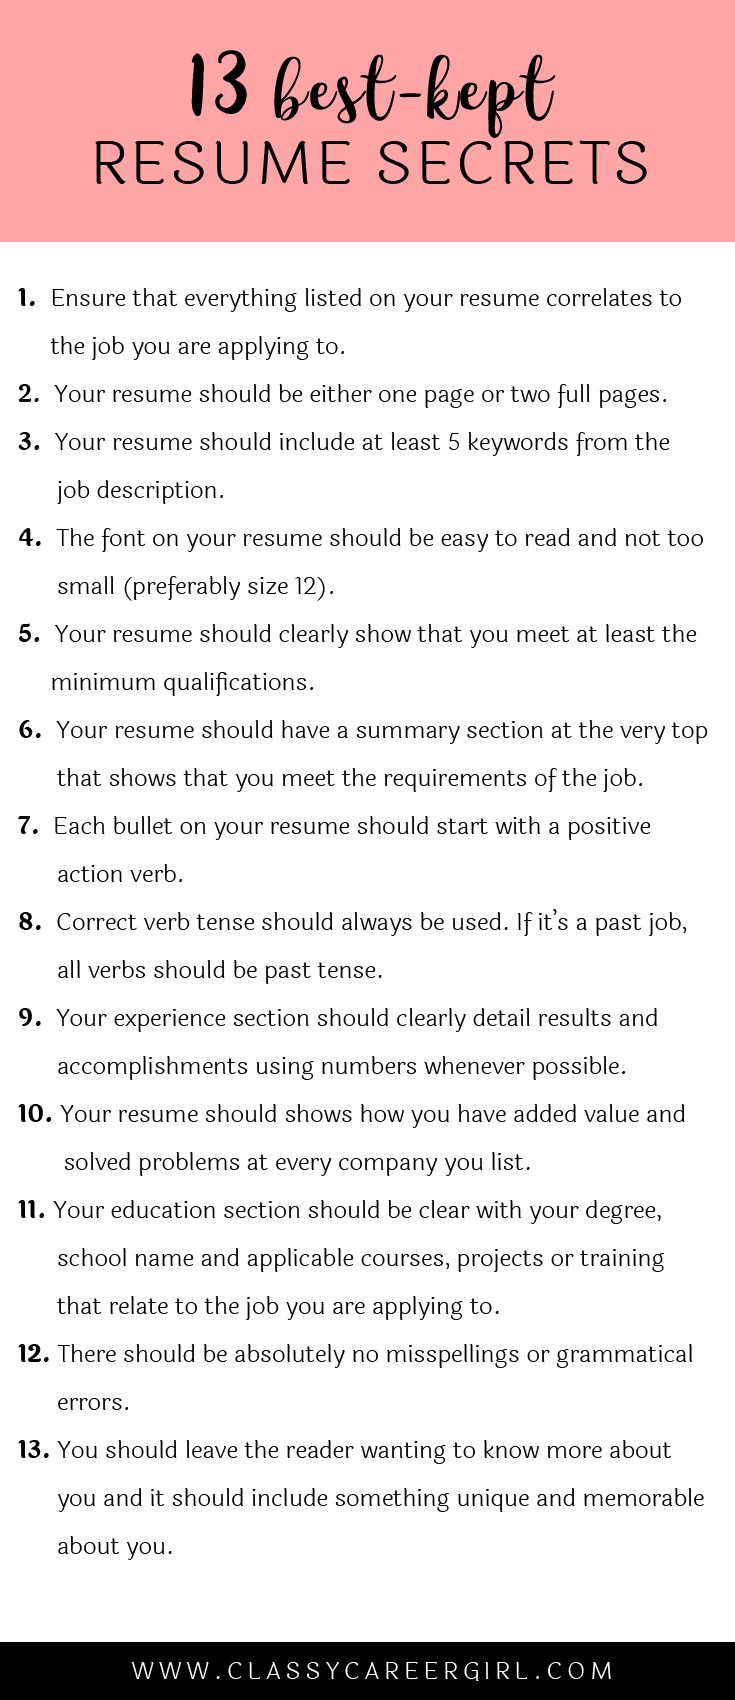 Opposenewapstandardsus  Pleasant  Ideas About Resume On Pinterest  Cv Format Resume  With Outstanding Some Hiring Managers Will Toss Your Resume Out If You Dont Know These  With Endearing Resume Builder Microsoft Word Also Emergency Management Resume In Addition Insurance Resume Examples And Submit Your Resume As Well As Pharmacy Manager Resume Additionally Personal Statement Resume Examples From Pinterestcom With Opposenewapstandardsus  Outstanding  Ideas About Resume On Pinterest  Cv Format Resume  With Endearing Some Hiring Managers Will Toss Your Resume Out If You Dont Know These  And Pleasant Resume Builder Microsoft Word Also Emergency Management Resume In Addition Insurance Resume Examples From Pinterestcom